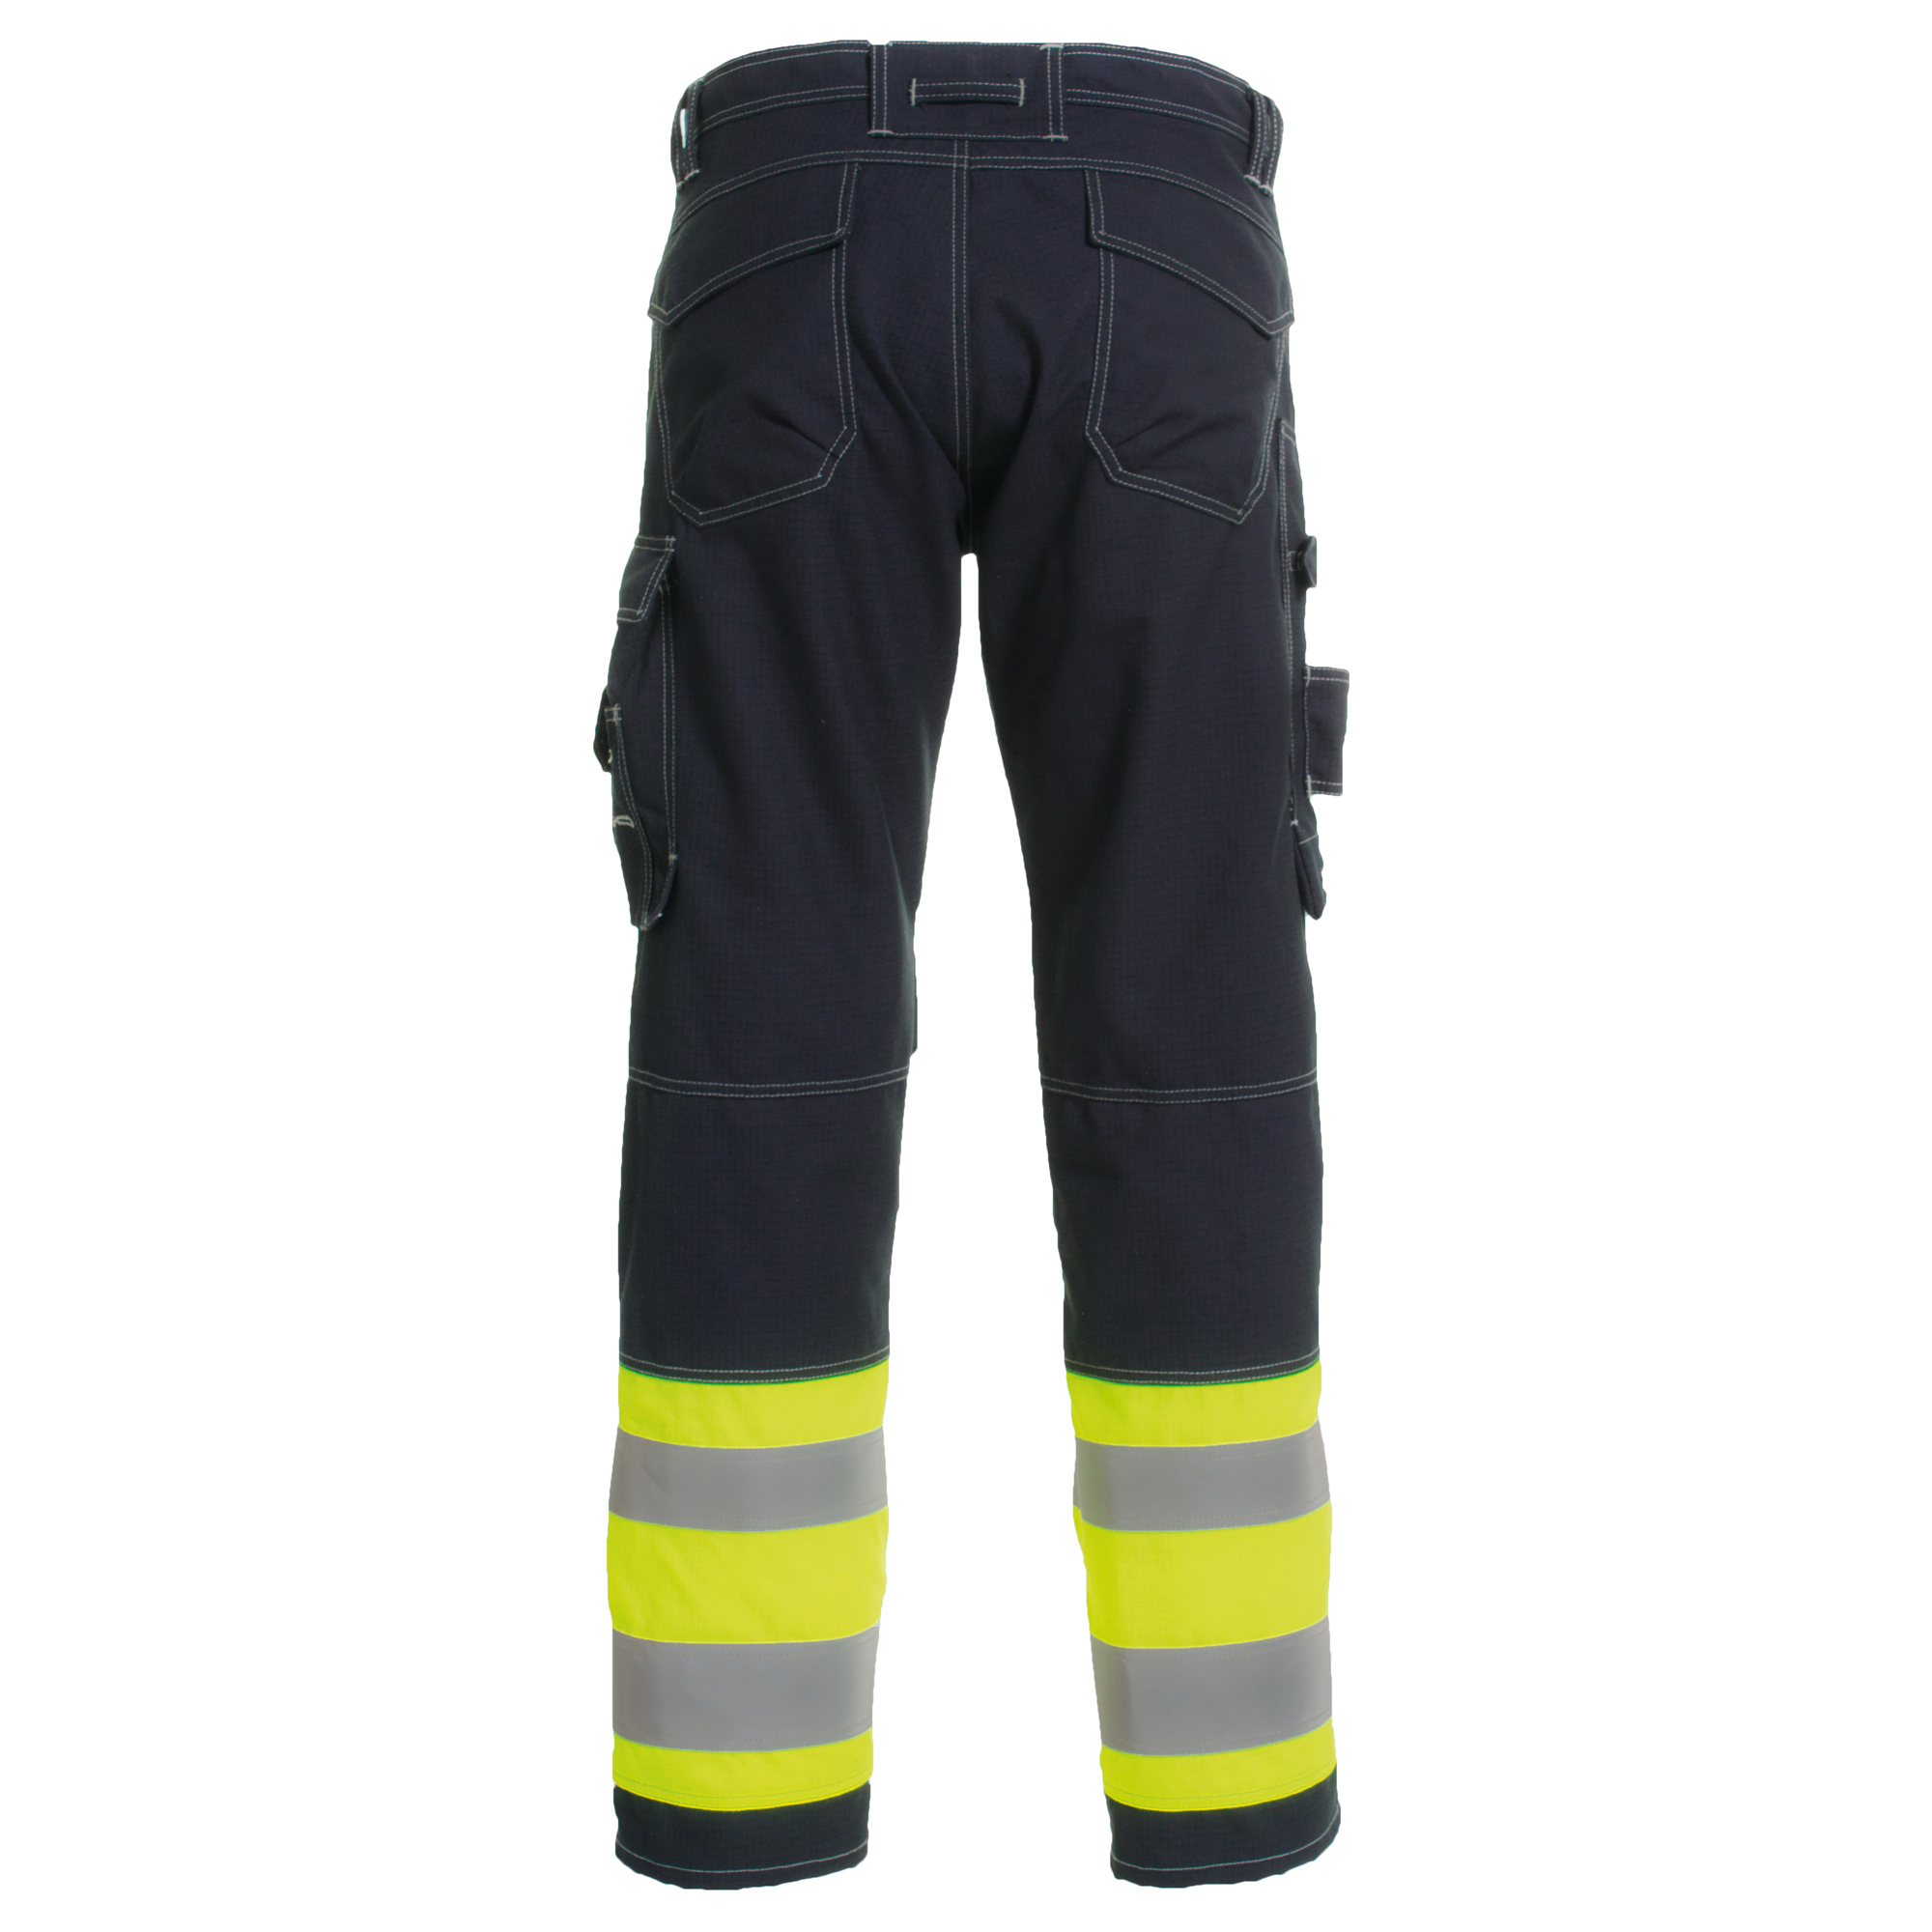 TRANEMO 5821 81 ARC FLASH TROUSERS - 9.5 CAL/CM2